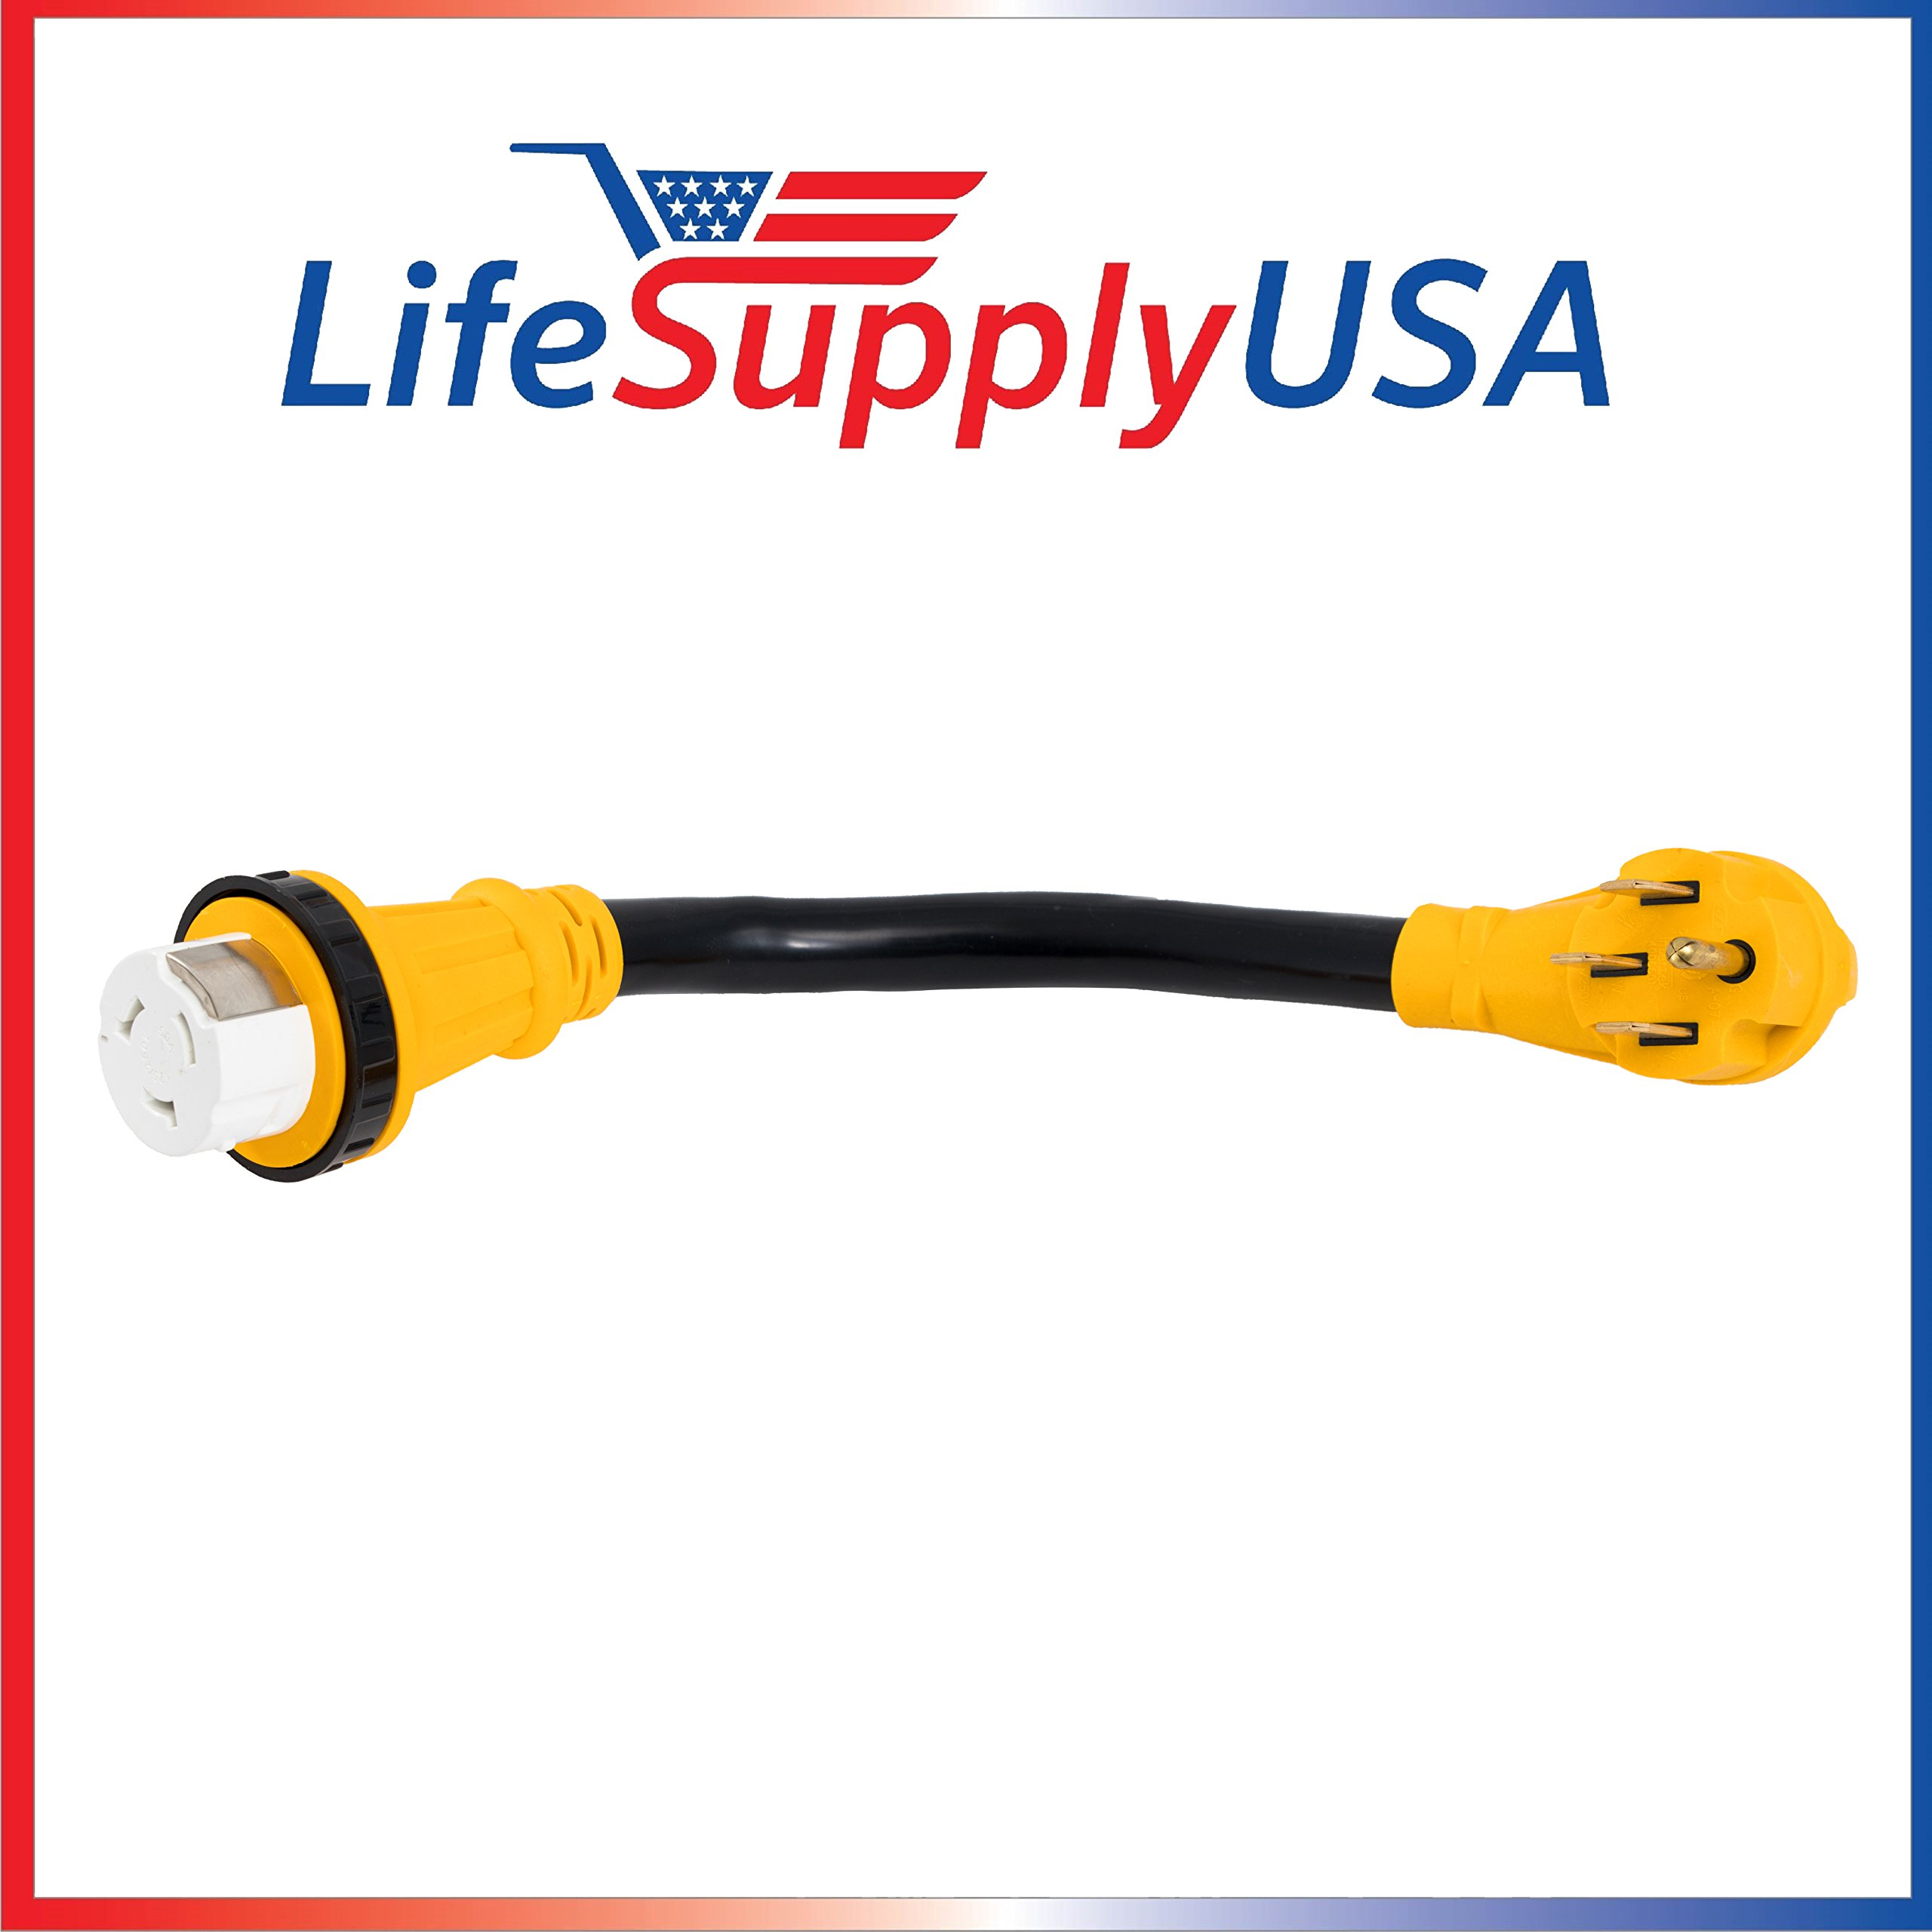 6/3 AWG + 8/1 AWG 50ft 125 Volt 50 AMP RV Cord With TWIST-LOCK Connector and Grip Handle (14-50P/SS2-50R) 125/250V STW Velcro ETL 50 Feet